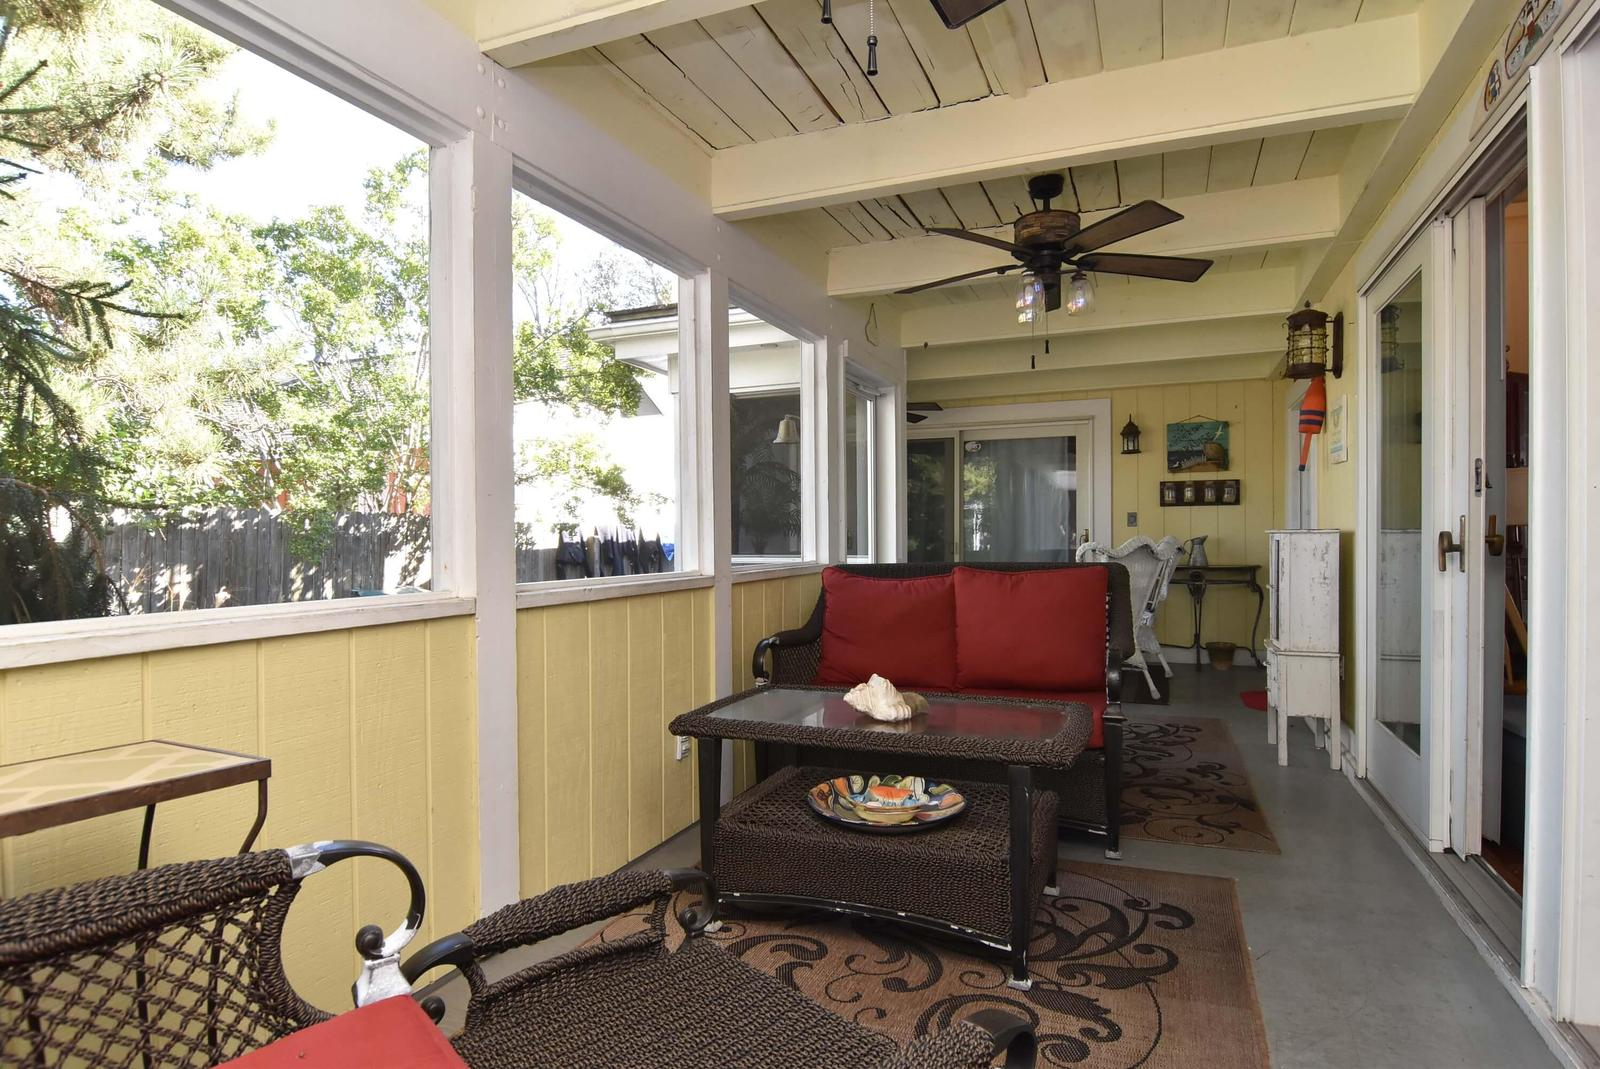 This cozy porch is just off living room, dining room and kitchen area